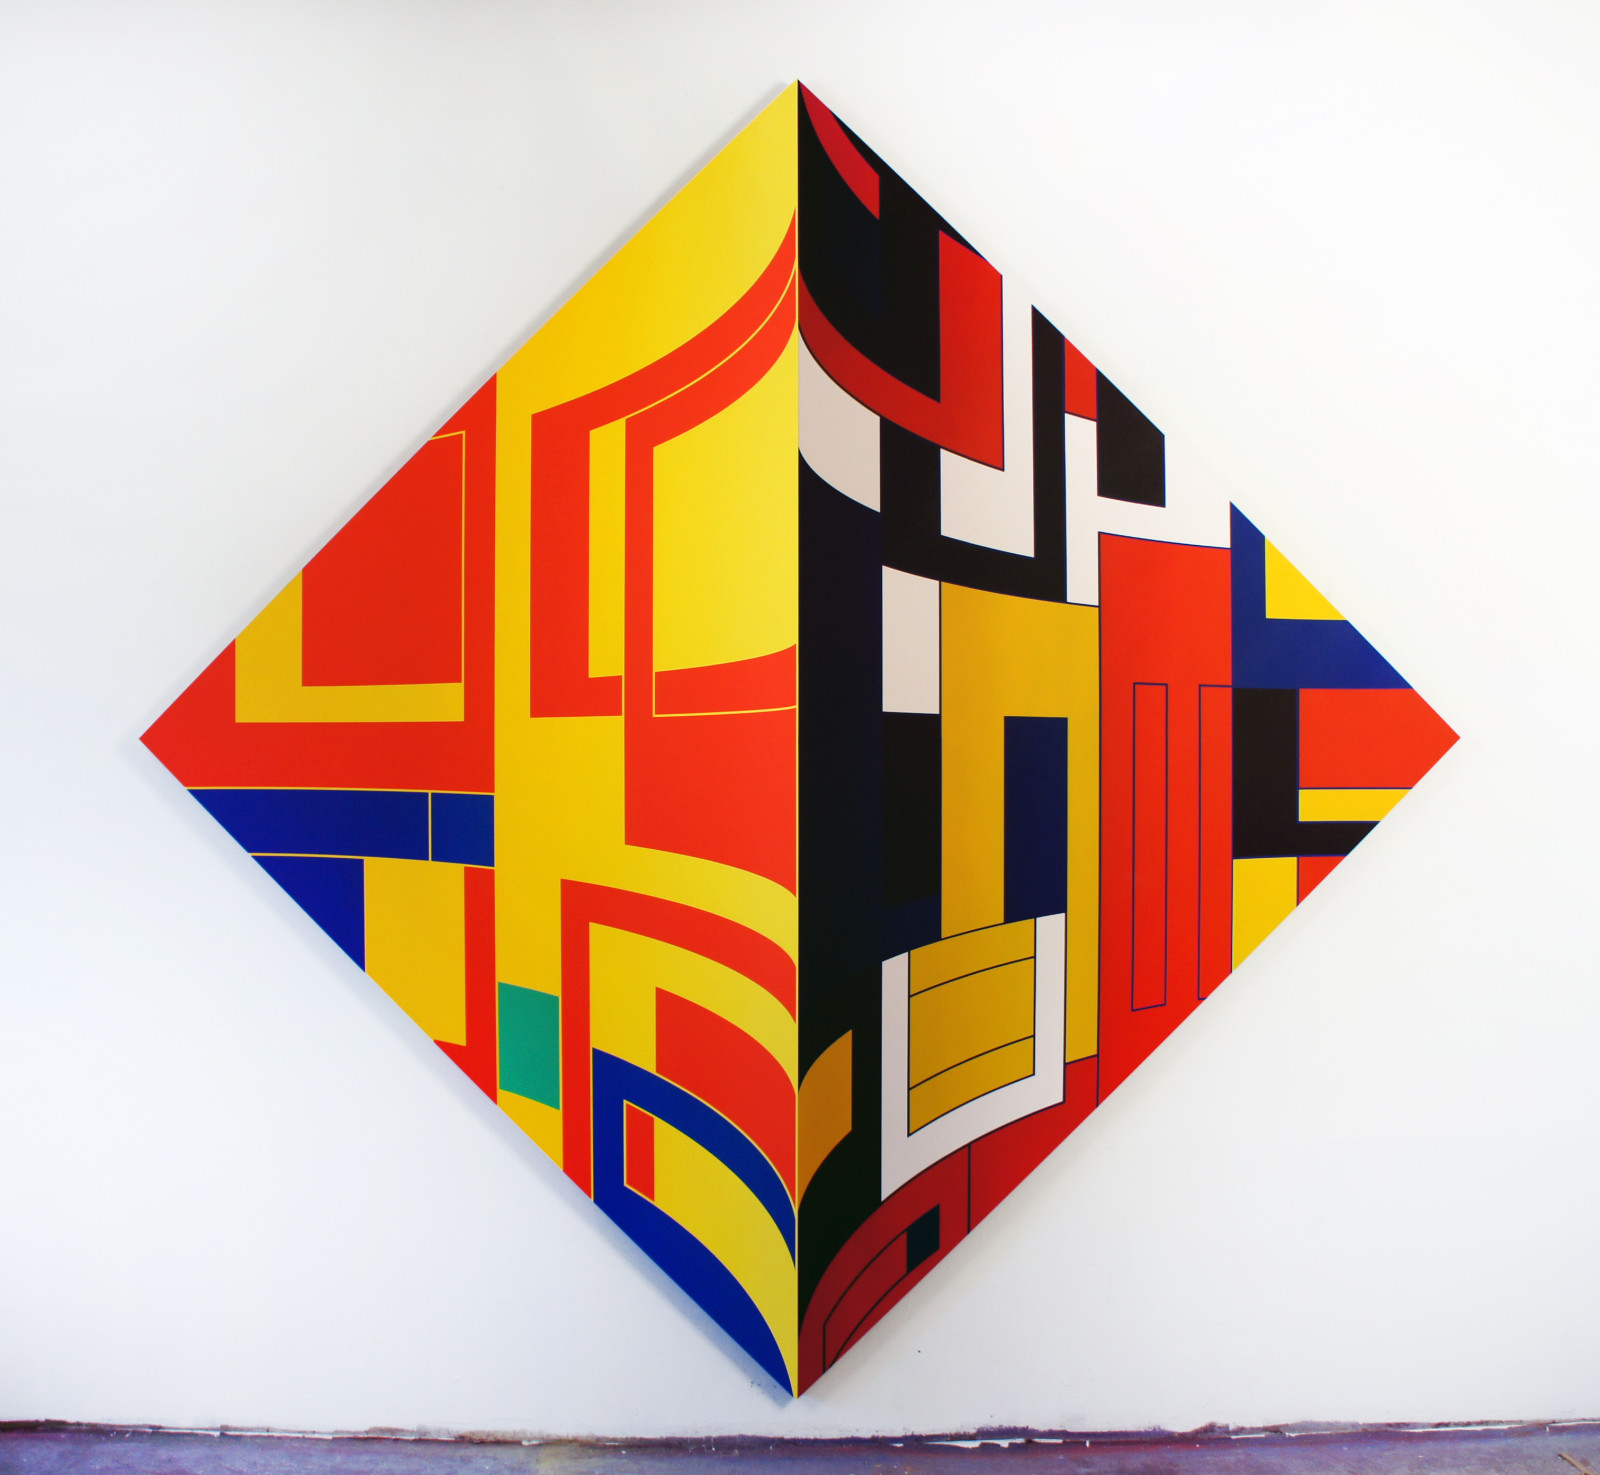 Thomas Burke, Dutch Jailbreak, 2014, acrylic on panel, 102 x 102 inches